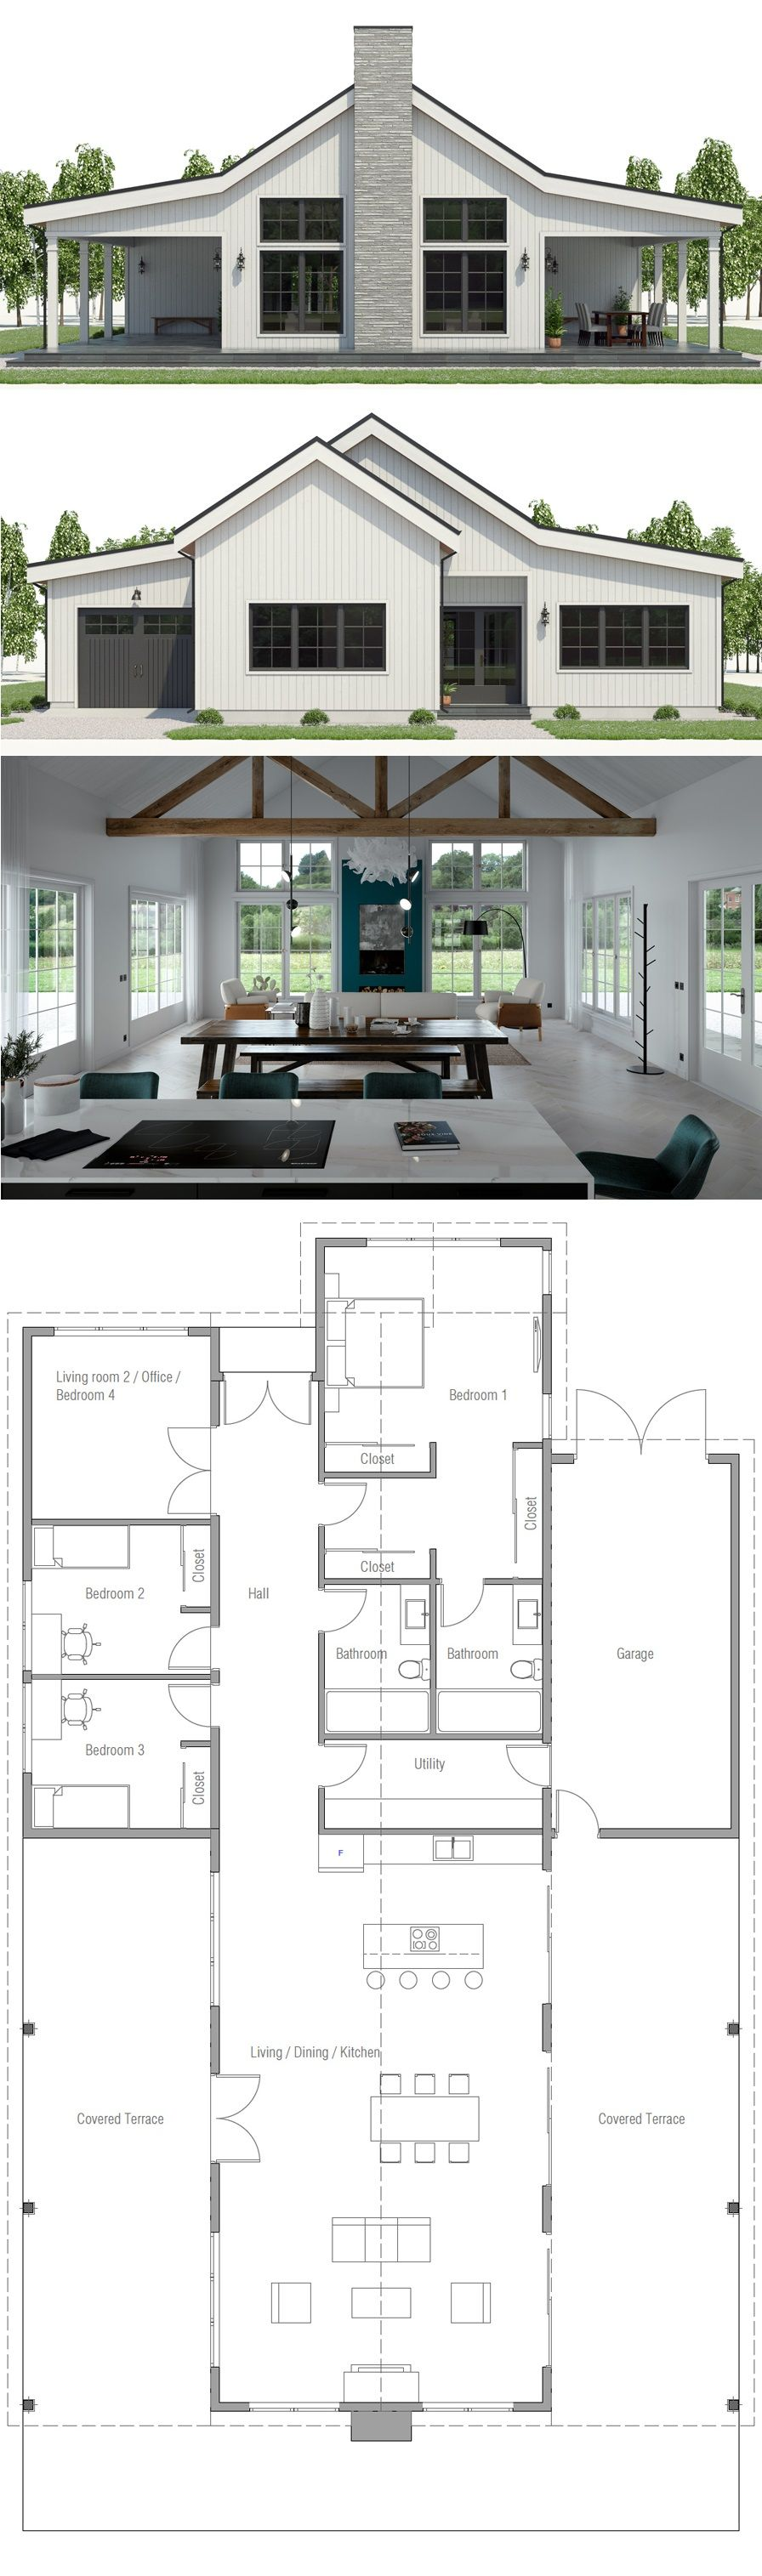 Small House Plans Small Home Designs Smallhouseplans New House Plans Dream House Plans Barn House Plans